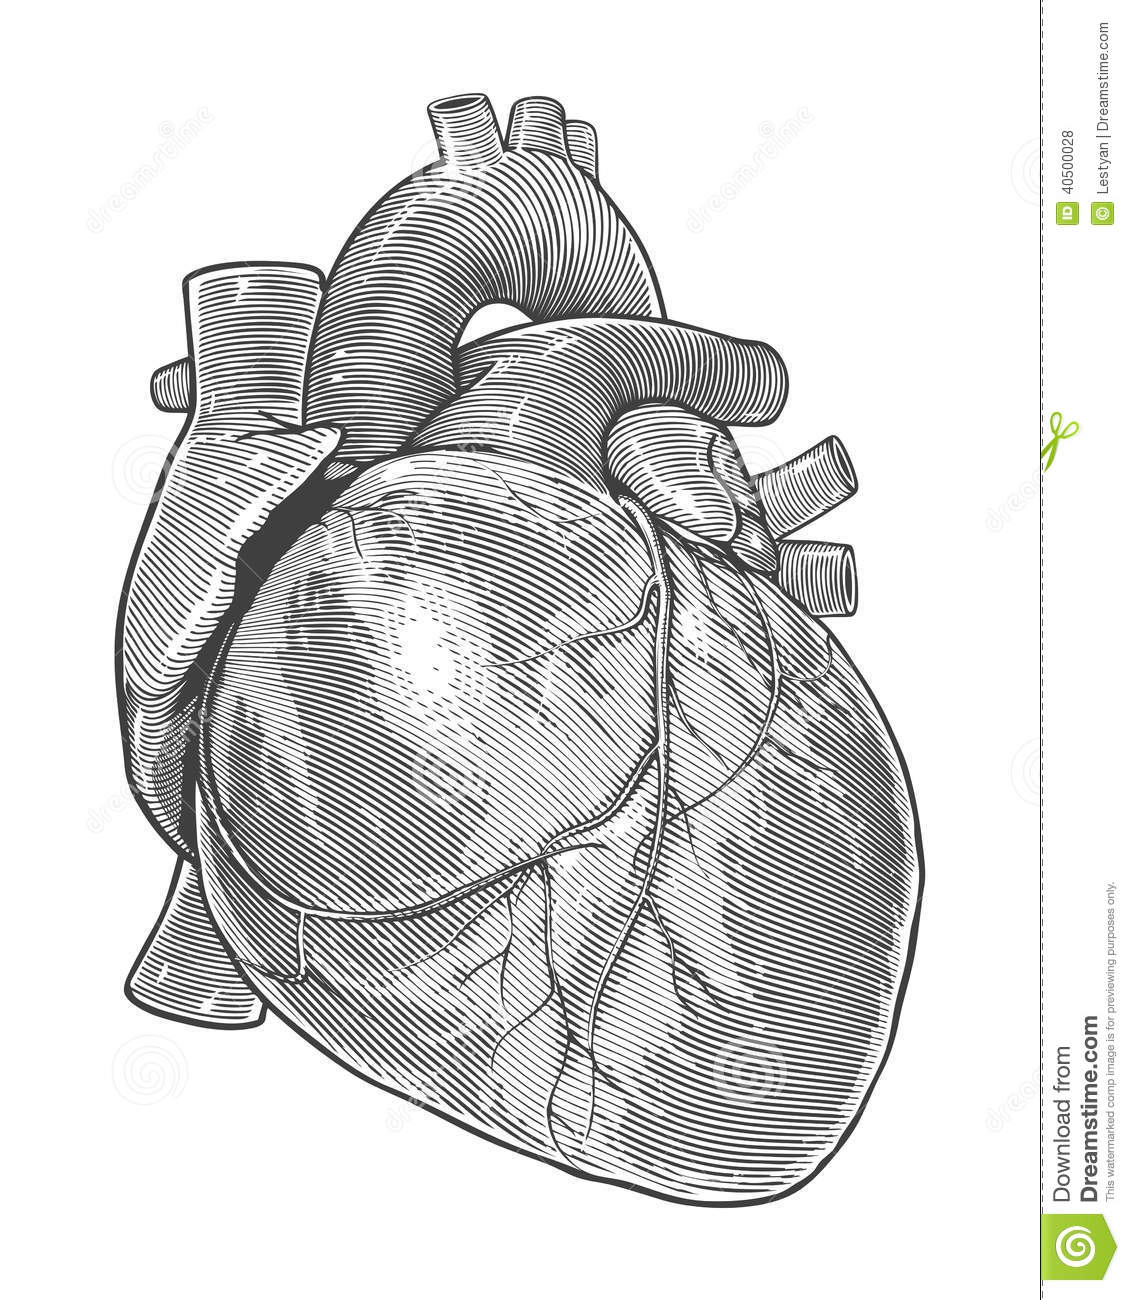 Human Heart In Vintage Engraving Style Stock Vector